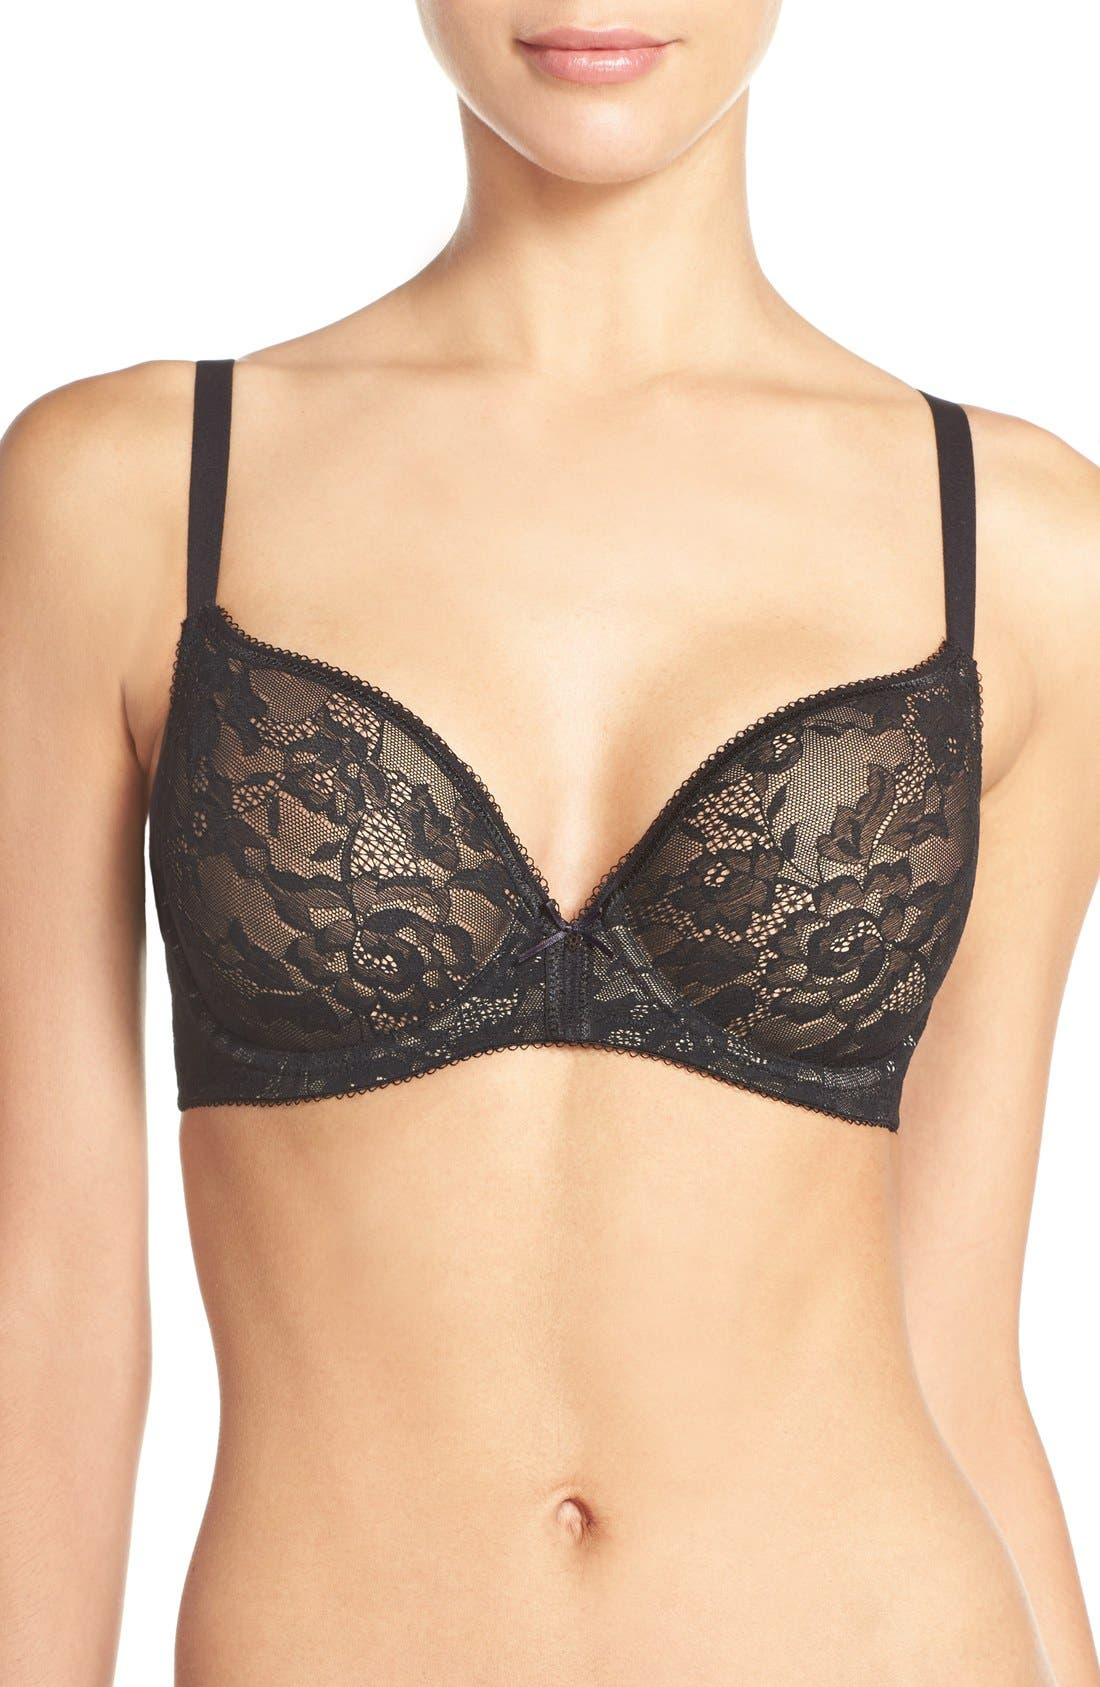 Wacoal Finesse Molded Underwire T-Shirt Bra